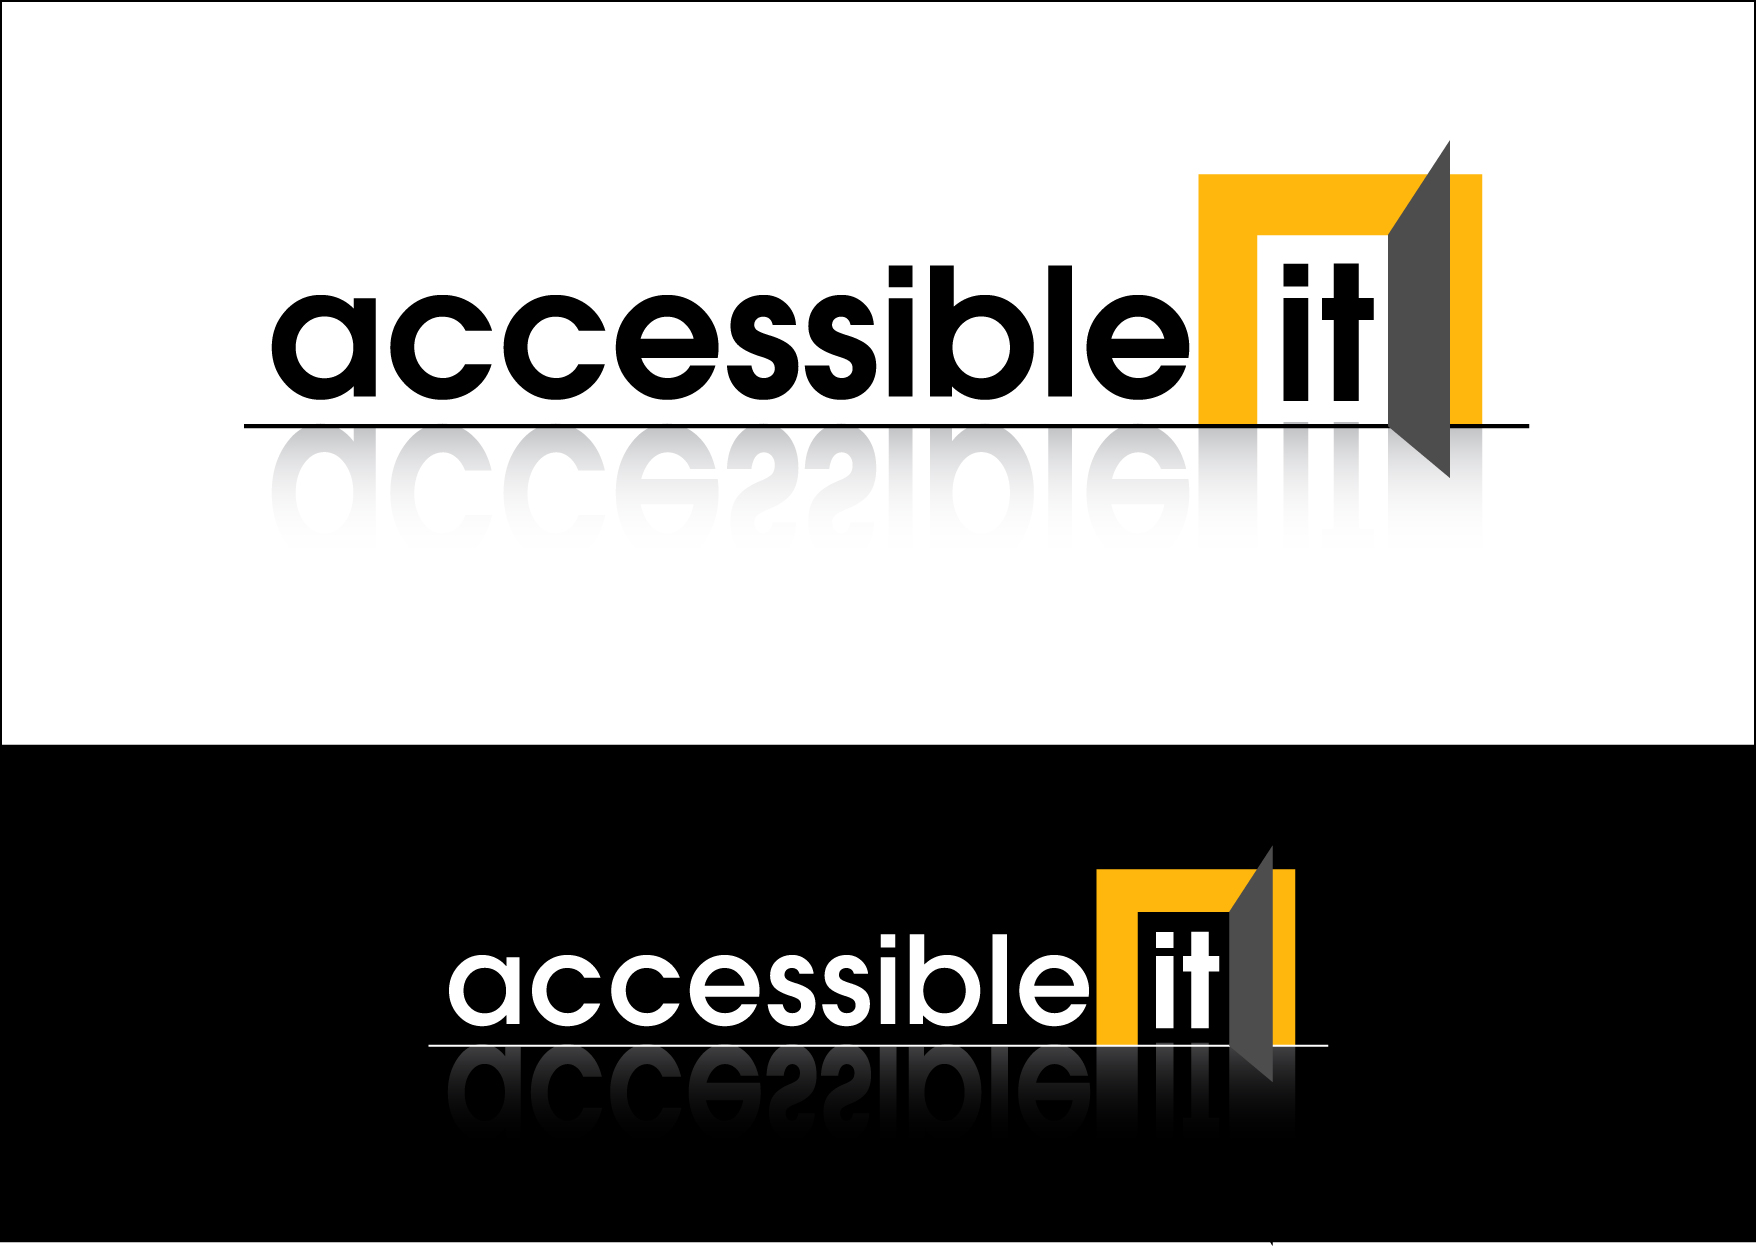 Logo Design by Wilfredo Mendoza - Entry No. 220 in the Logo Design Contest Logo Design Needed for Exciting New Company Accessible IT.